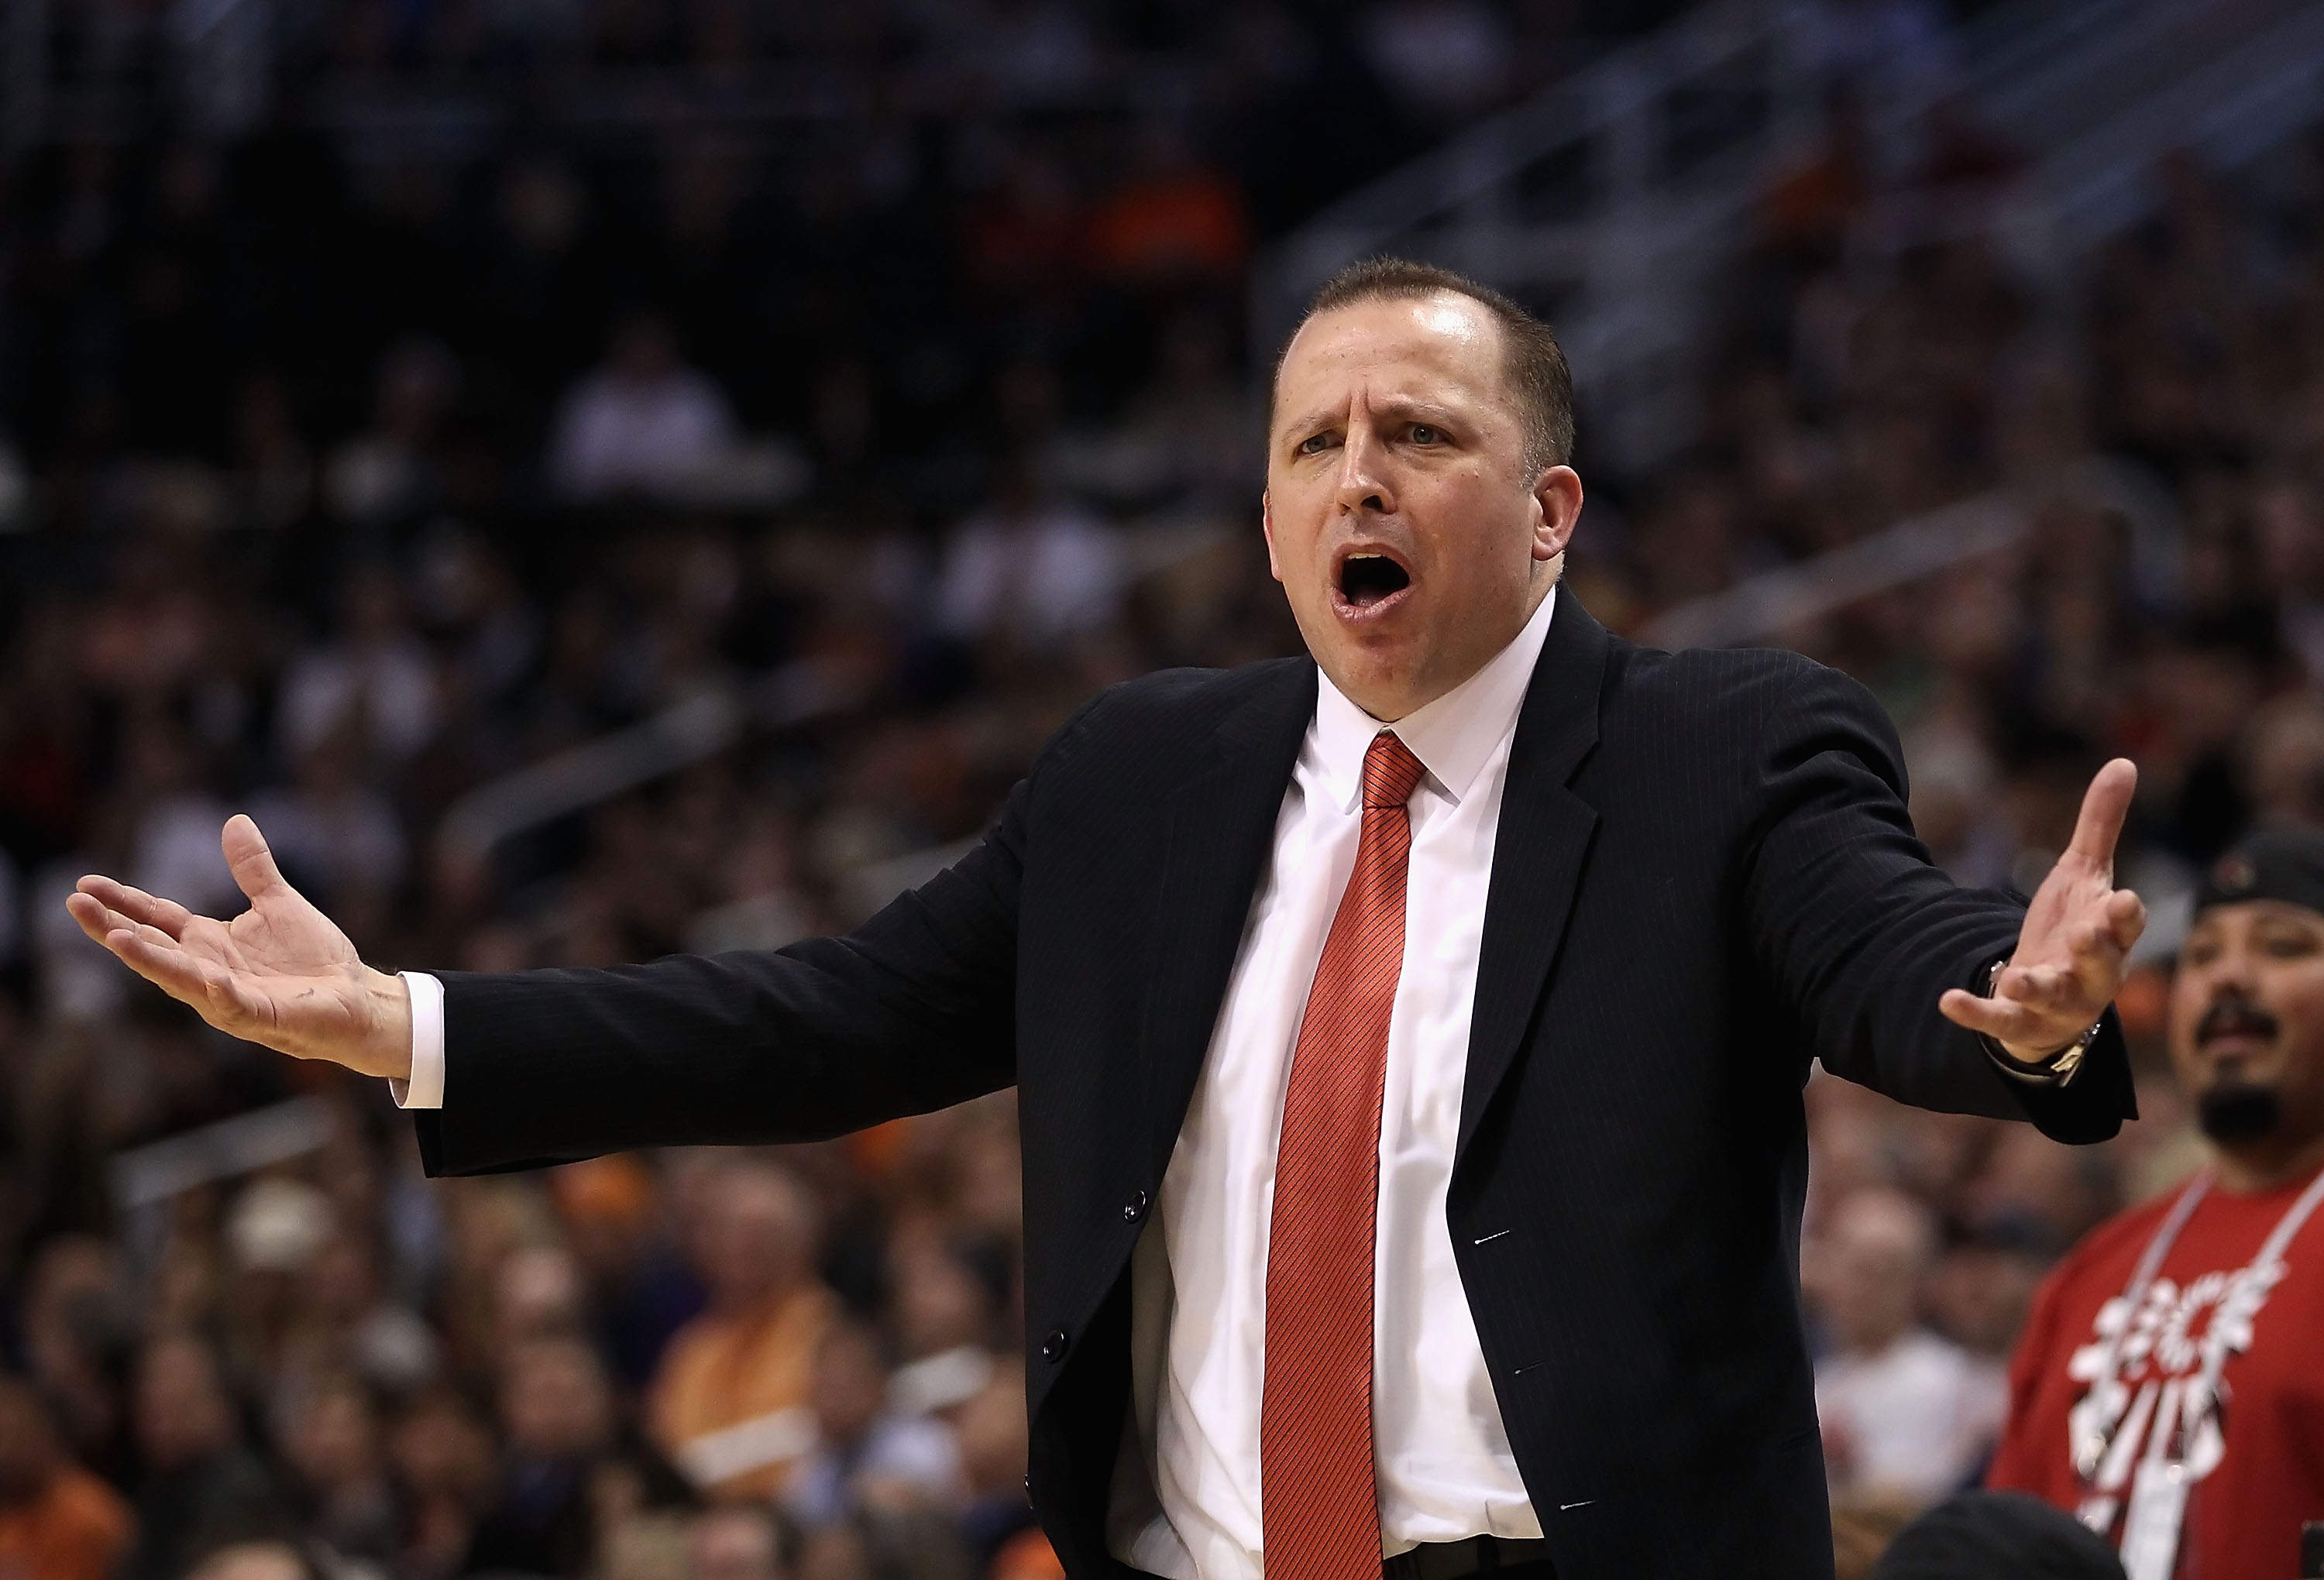 PHOENIX - NOVEMBER 24:  Head coach Tom Thibodeau of the Chicago Bulls reacts to a call during the NBA game against the Phoenix Suns at US Airways Center on November 24, 2010 in Phoenix, Arizona. The Bulls defeated the Suns 123-115 in double overtime.  NOT